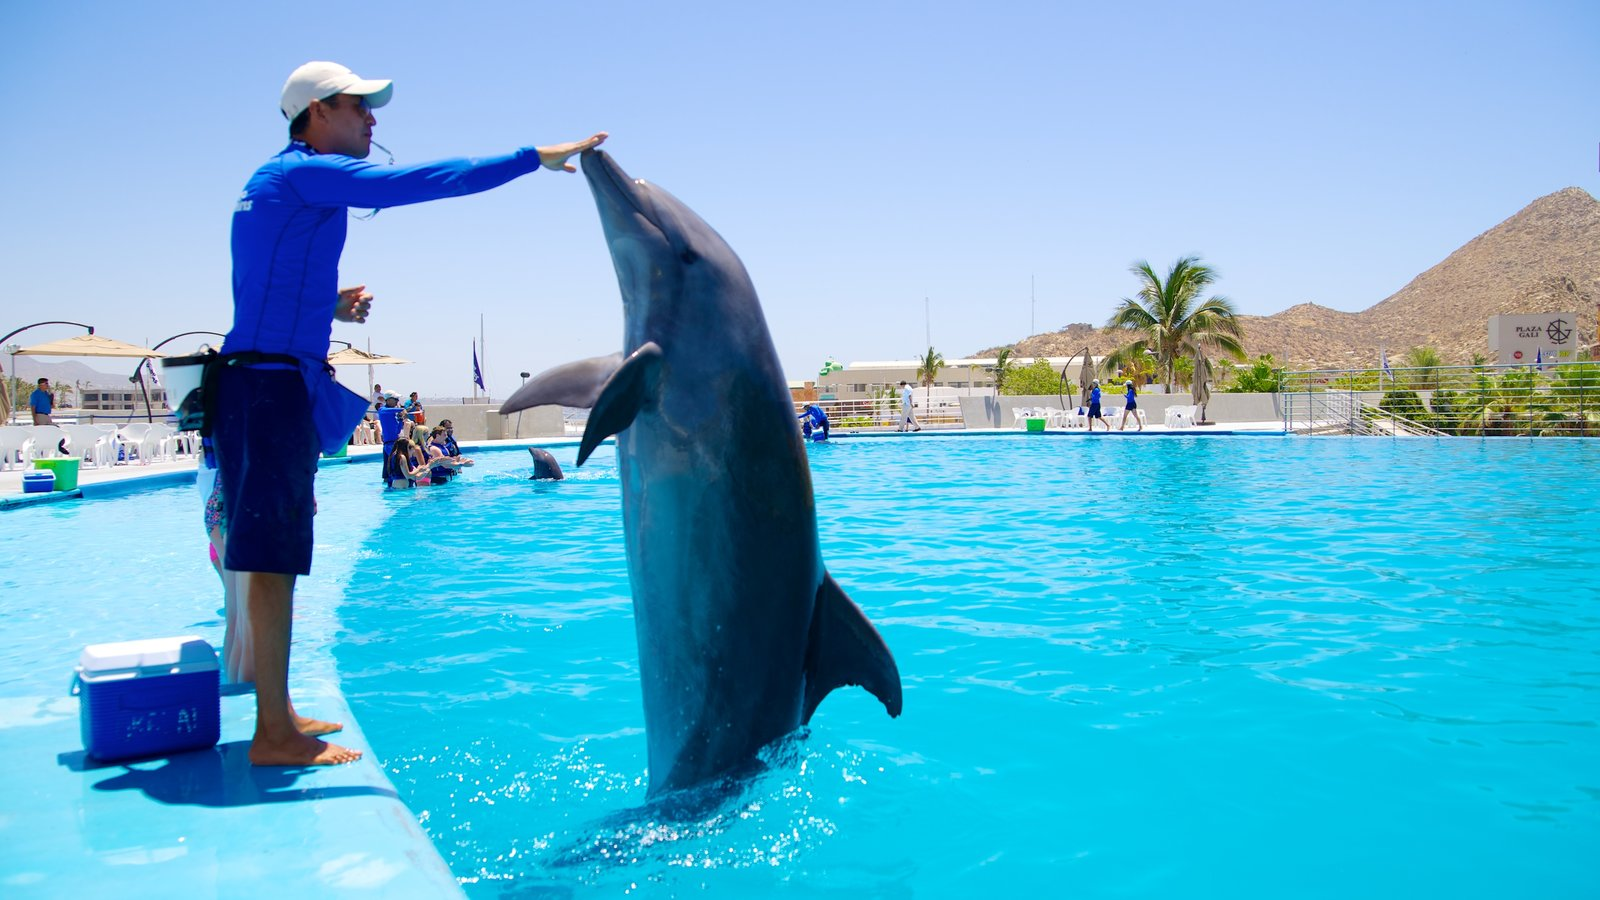 Cabo Dolphins featuring a water park, performance art and marine life